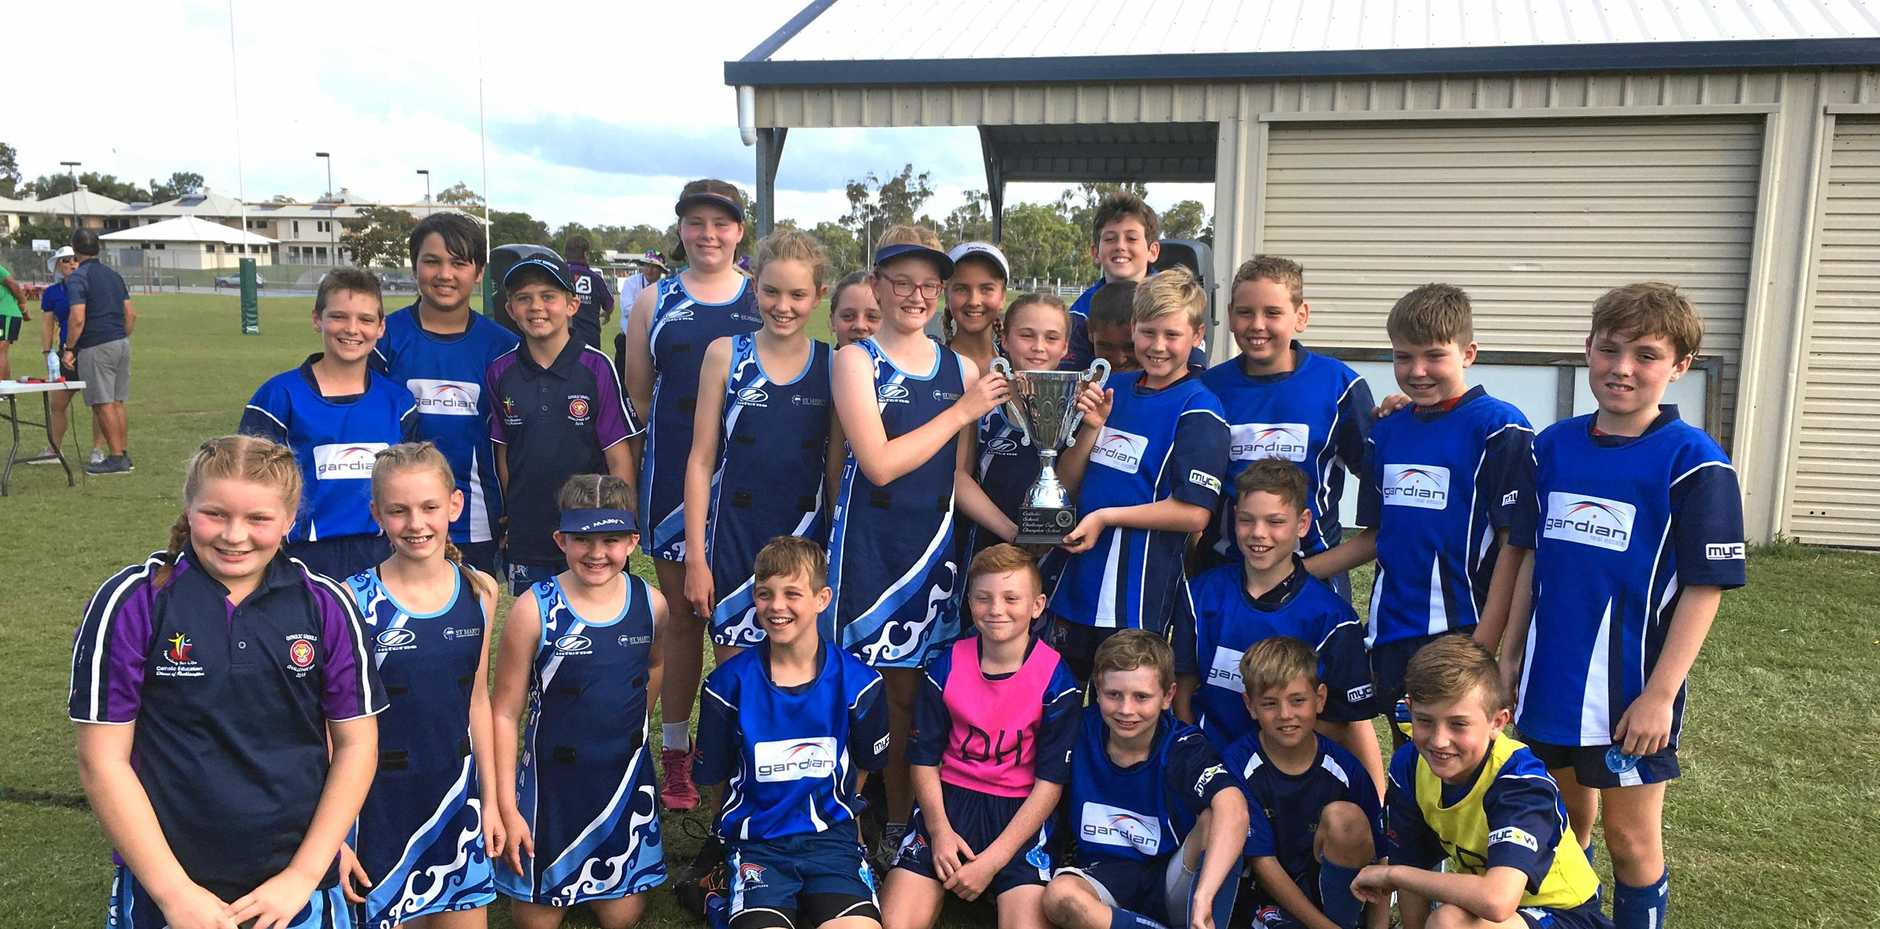 St Mary's Catholic Primary School students celebrate with the Overall Challenge Cup at the Catholic Schools' Challenge Cup in Yeppoon.